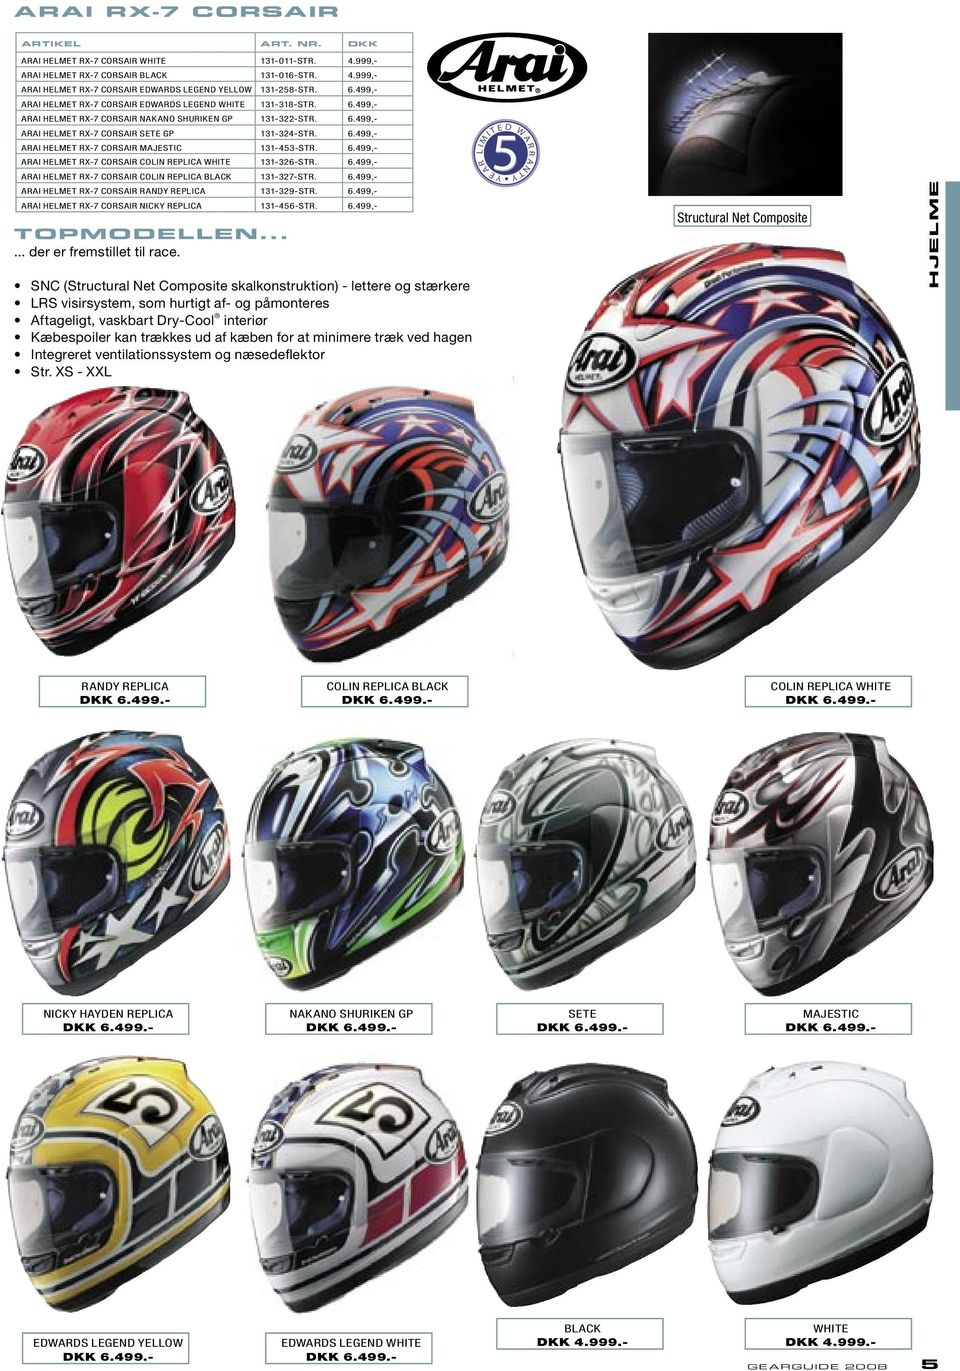 6.499,- ARAI HELMET RX-7 CORSAIR COLIN REPLICA WHITE 131-326-STR. 6.499,- ARAI HELMET RX-7 CORSAIR COLIN REPLICA 131-327-STR. 6.499,- ARAI HELMET RX-7 CORSAIR RANDY REPLICA 131-329-STR. 6.499,- ARAI HELMET RX-7 CORSAIR NICKY REPLICA 131-456-STR.